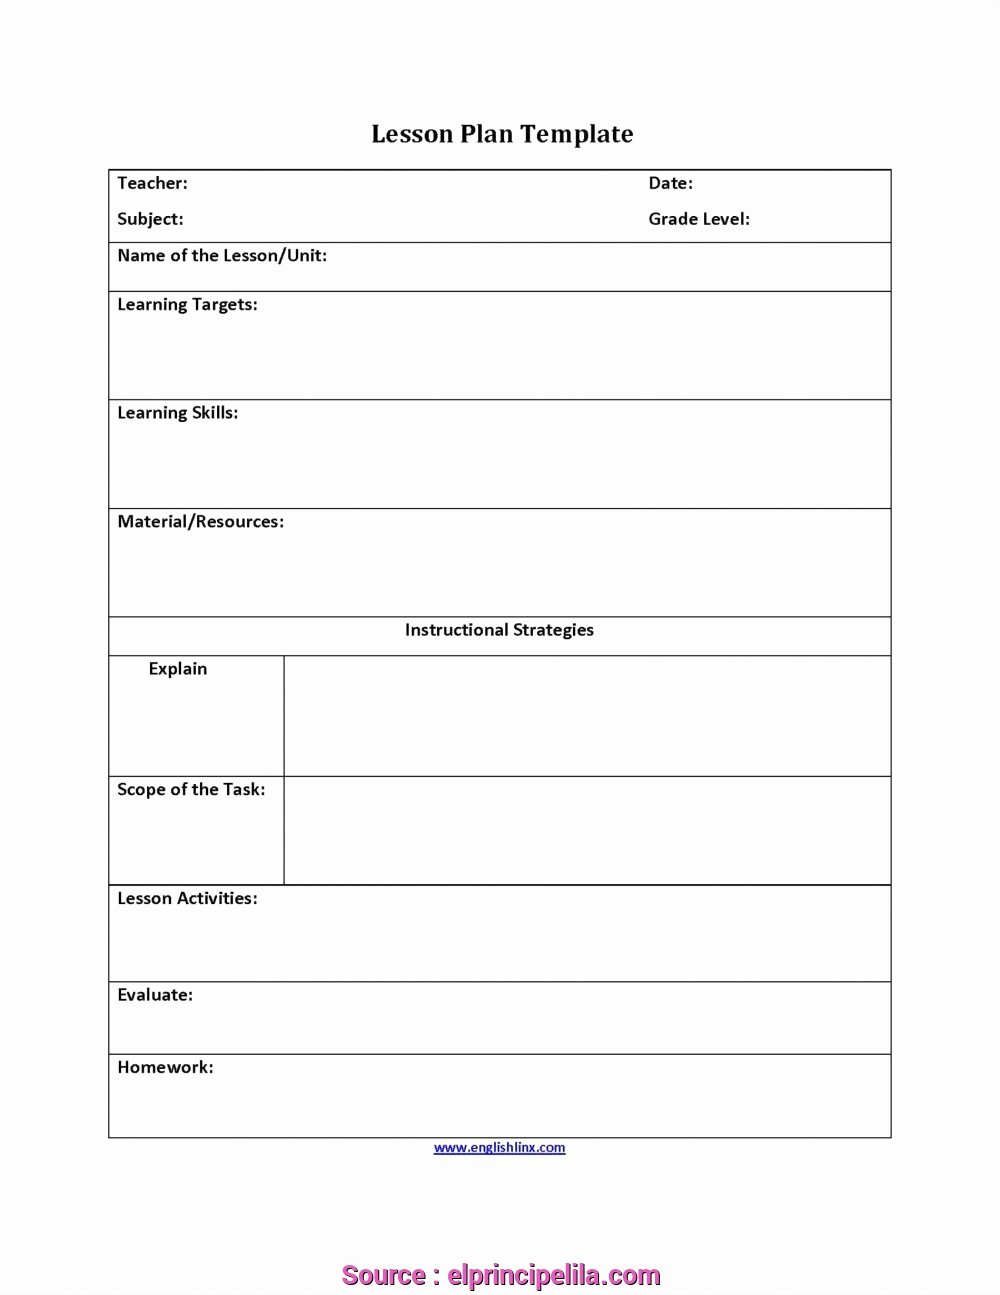 Physical Education Lesson Plans Template Elegant 6 Professional Physical Education Lesson Plans Doc S